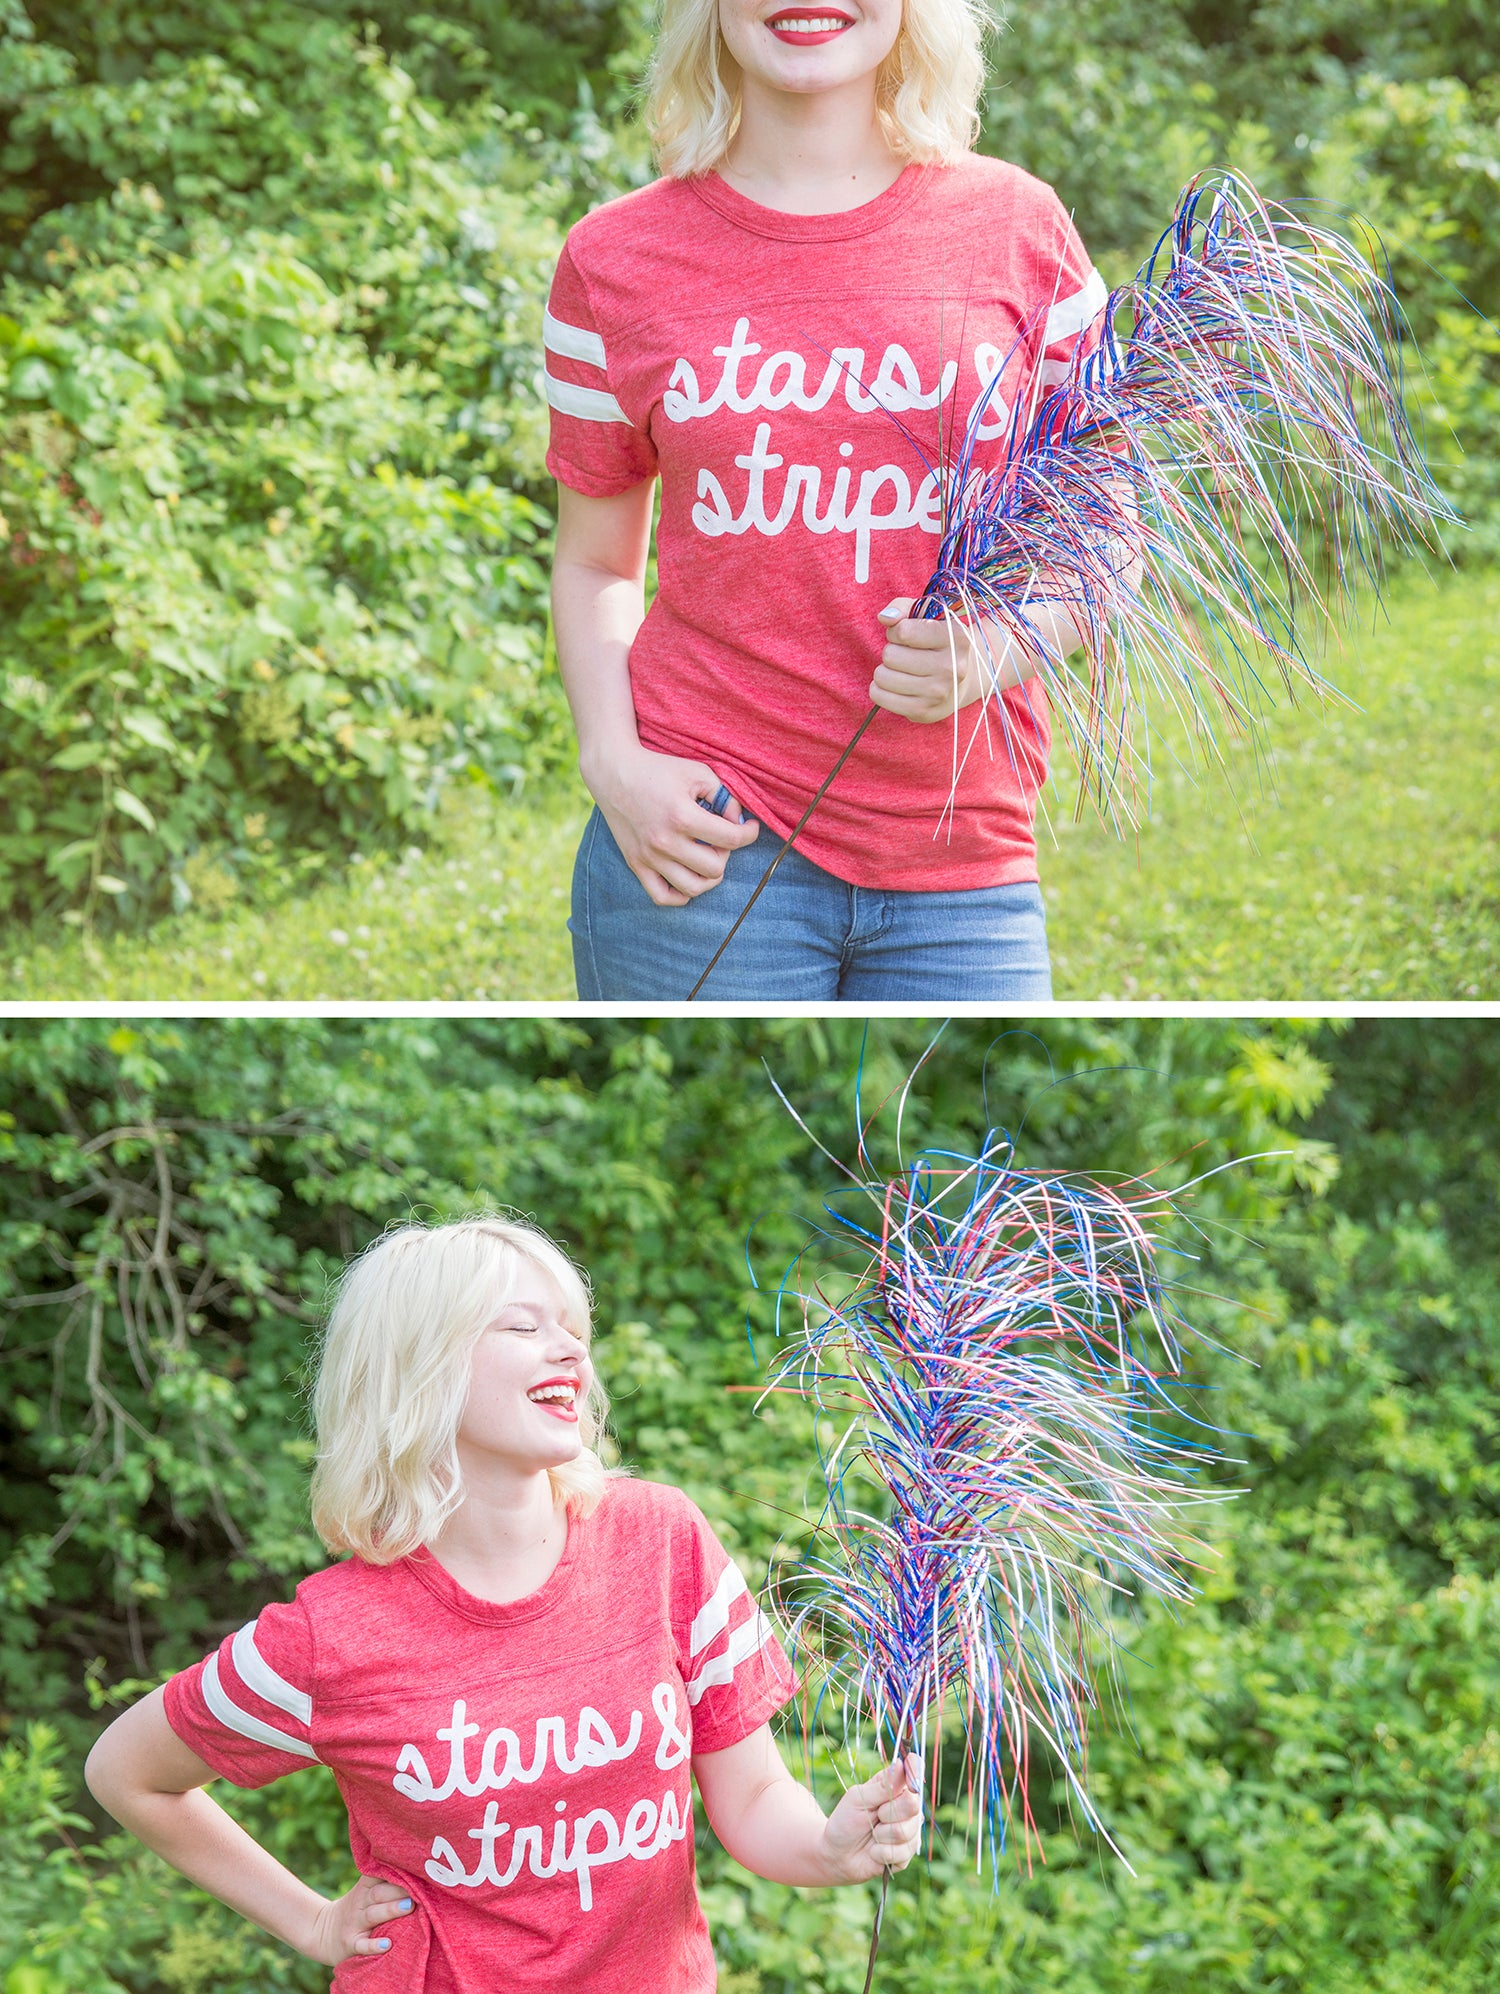 4th of July Fashion Ideas at Eccentrics Boutique